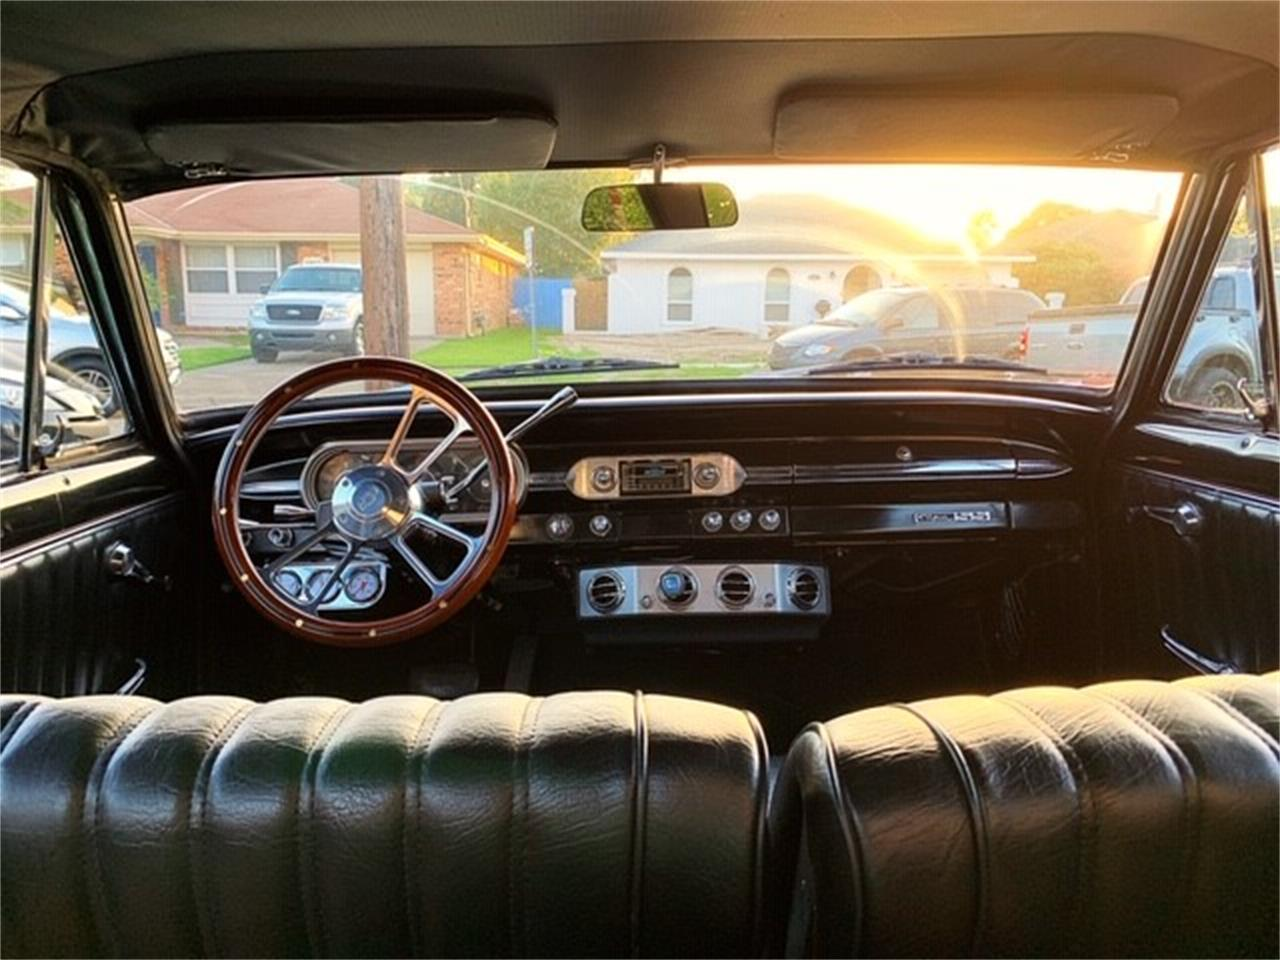 1963 Chevrolet Chevy II Nova SS for sale in Metairie, LA – photo 16